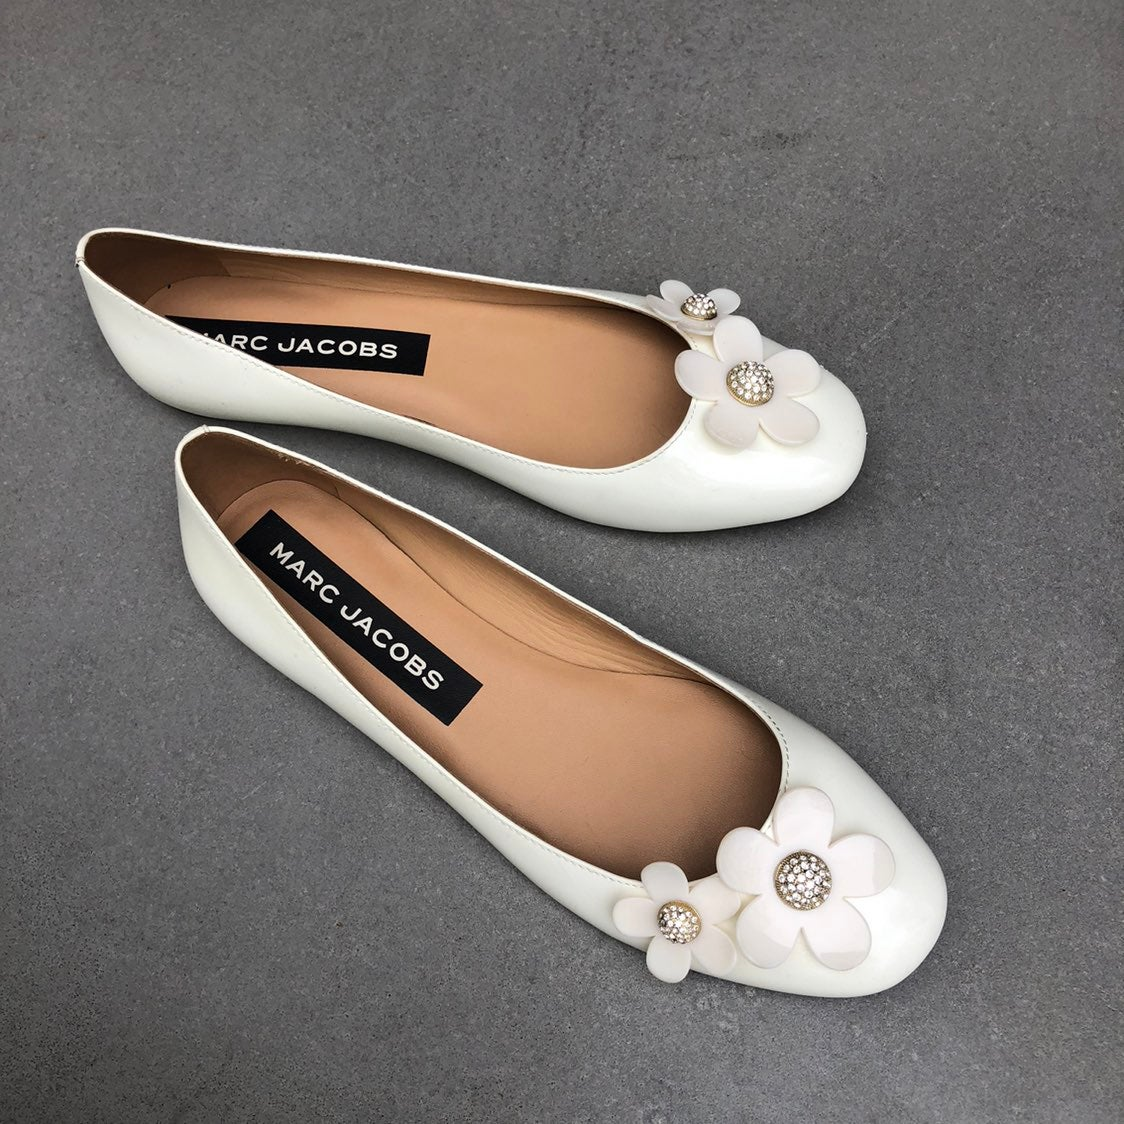 MARC JACOBS Daisy flat shoes size 40.5